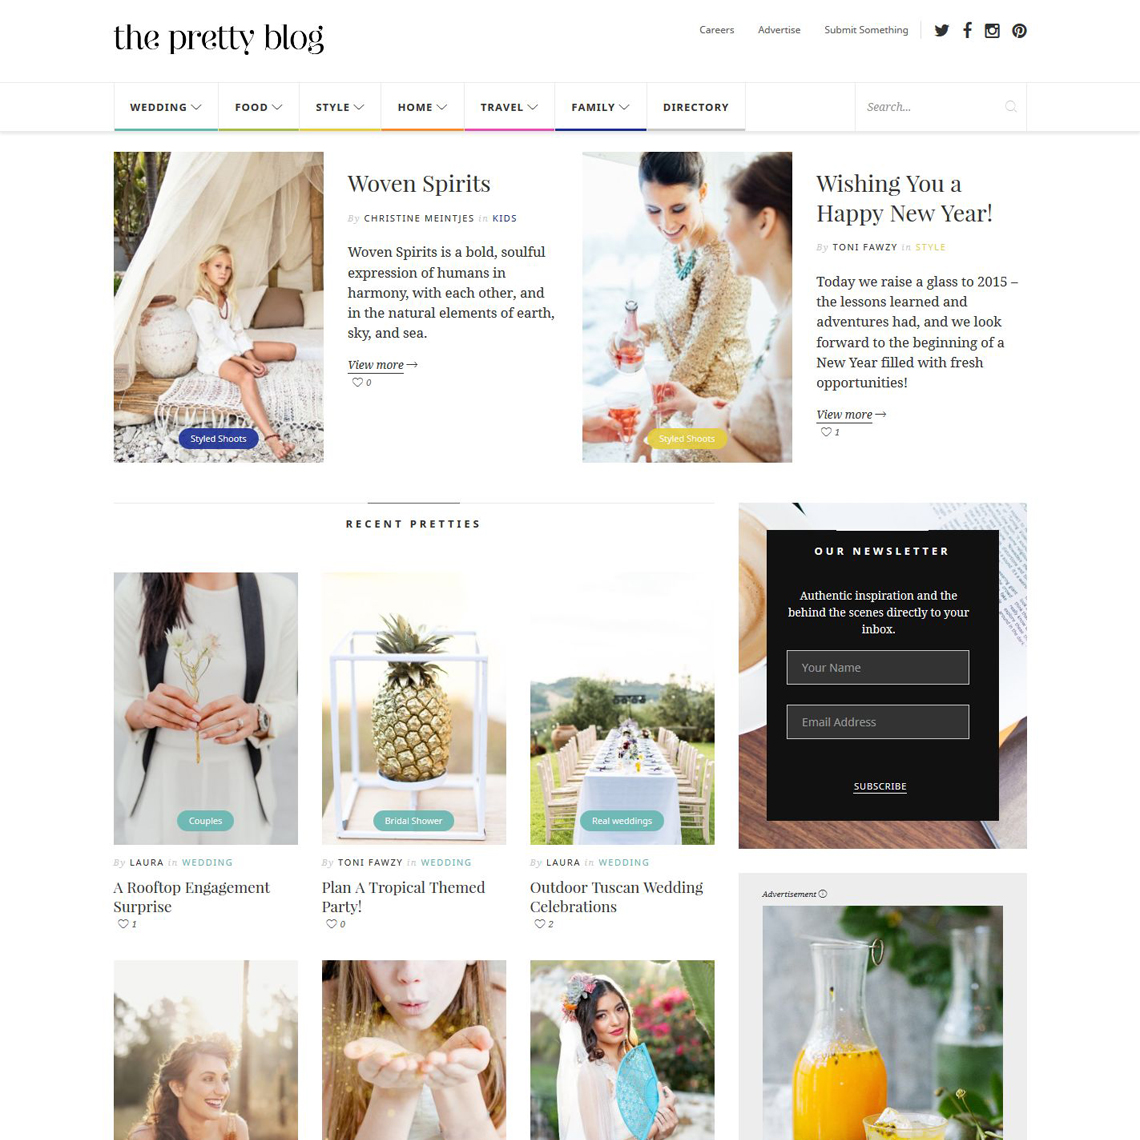 bloved-lifestyle-blog-top-10-style-blogs-2016-the-pretty-blog